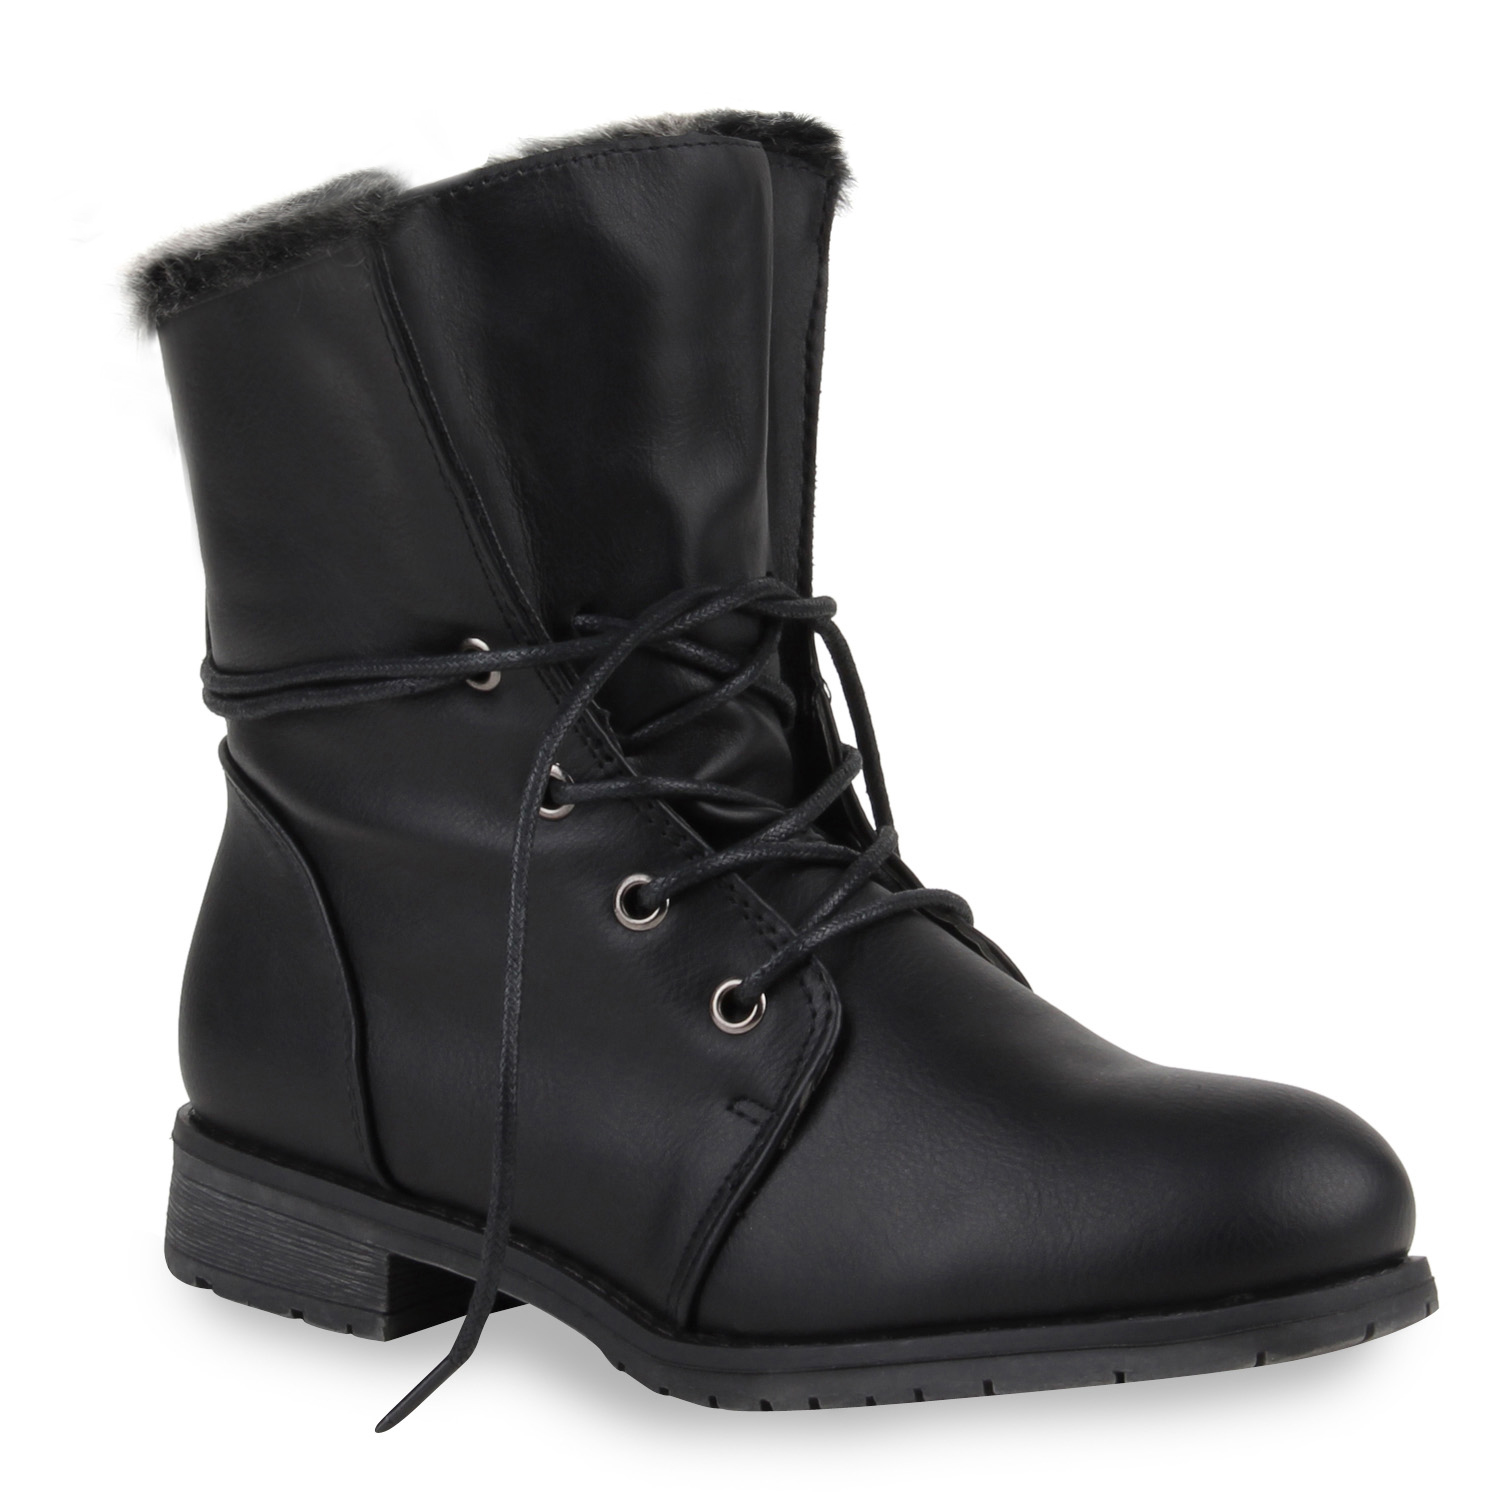 warm gef tterte damen winterboots stiefeletten winter schuhe 890382 ebay. Black Bedroom Furniture Sets. Home Design Ideas